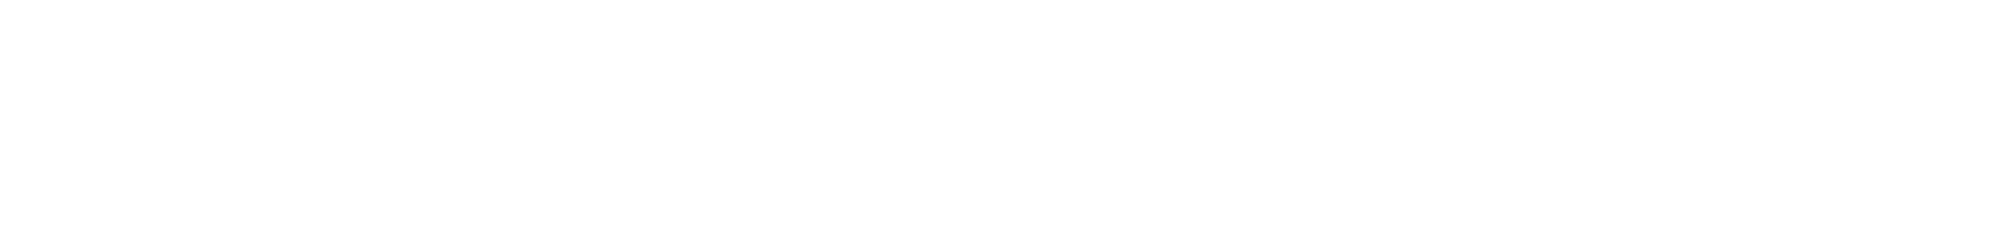 Your Bulimia Free Life